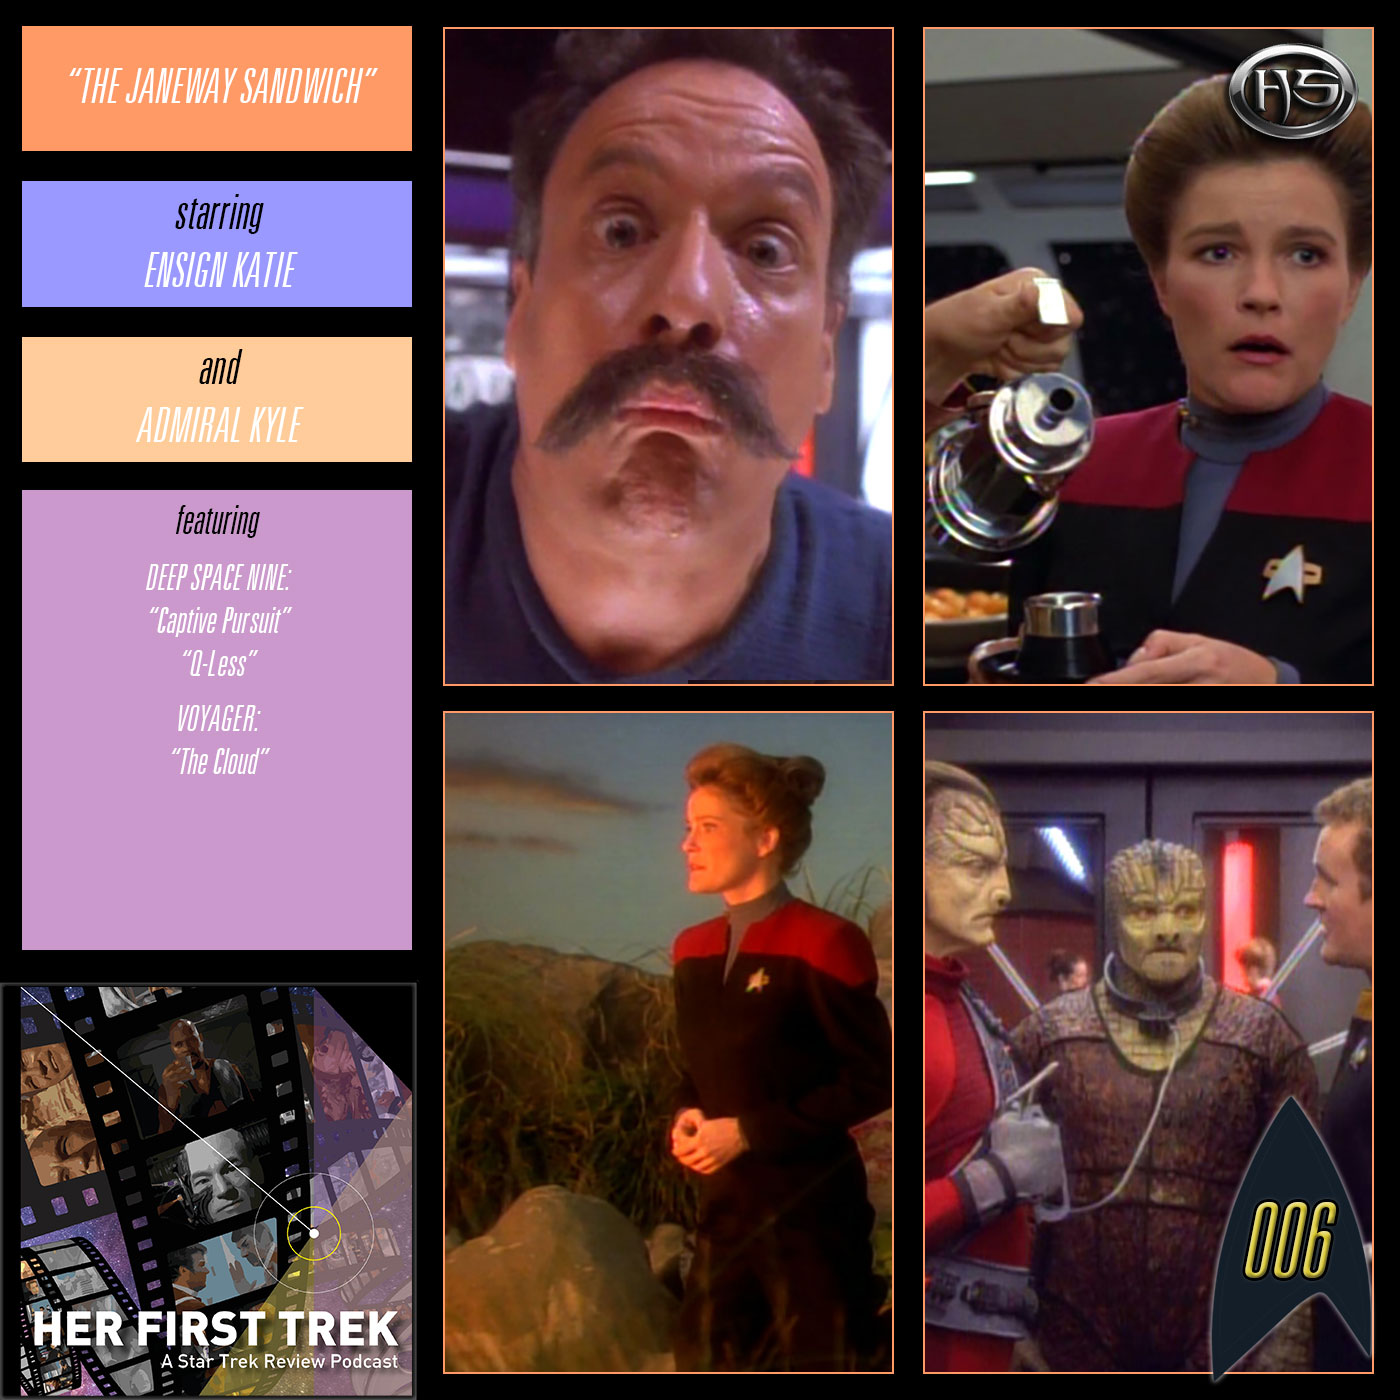 Her First Trek Episode 6